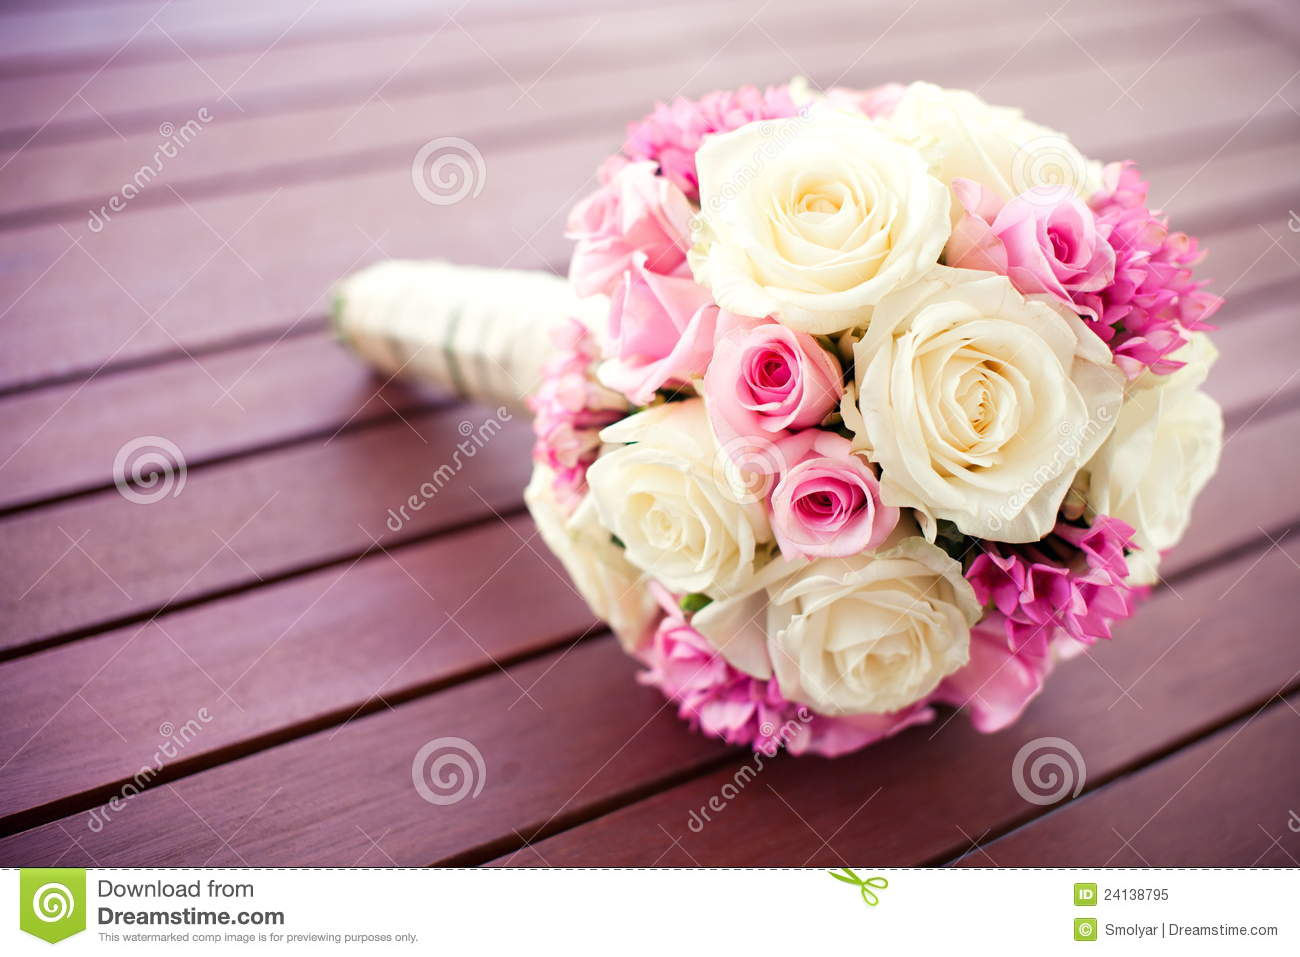 Bridal rose bouquet stock image image of pink wedding 24138795 bridal rose bouquet izmirmasajfo